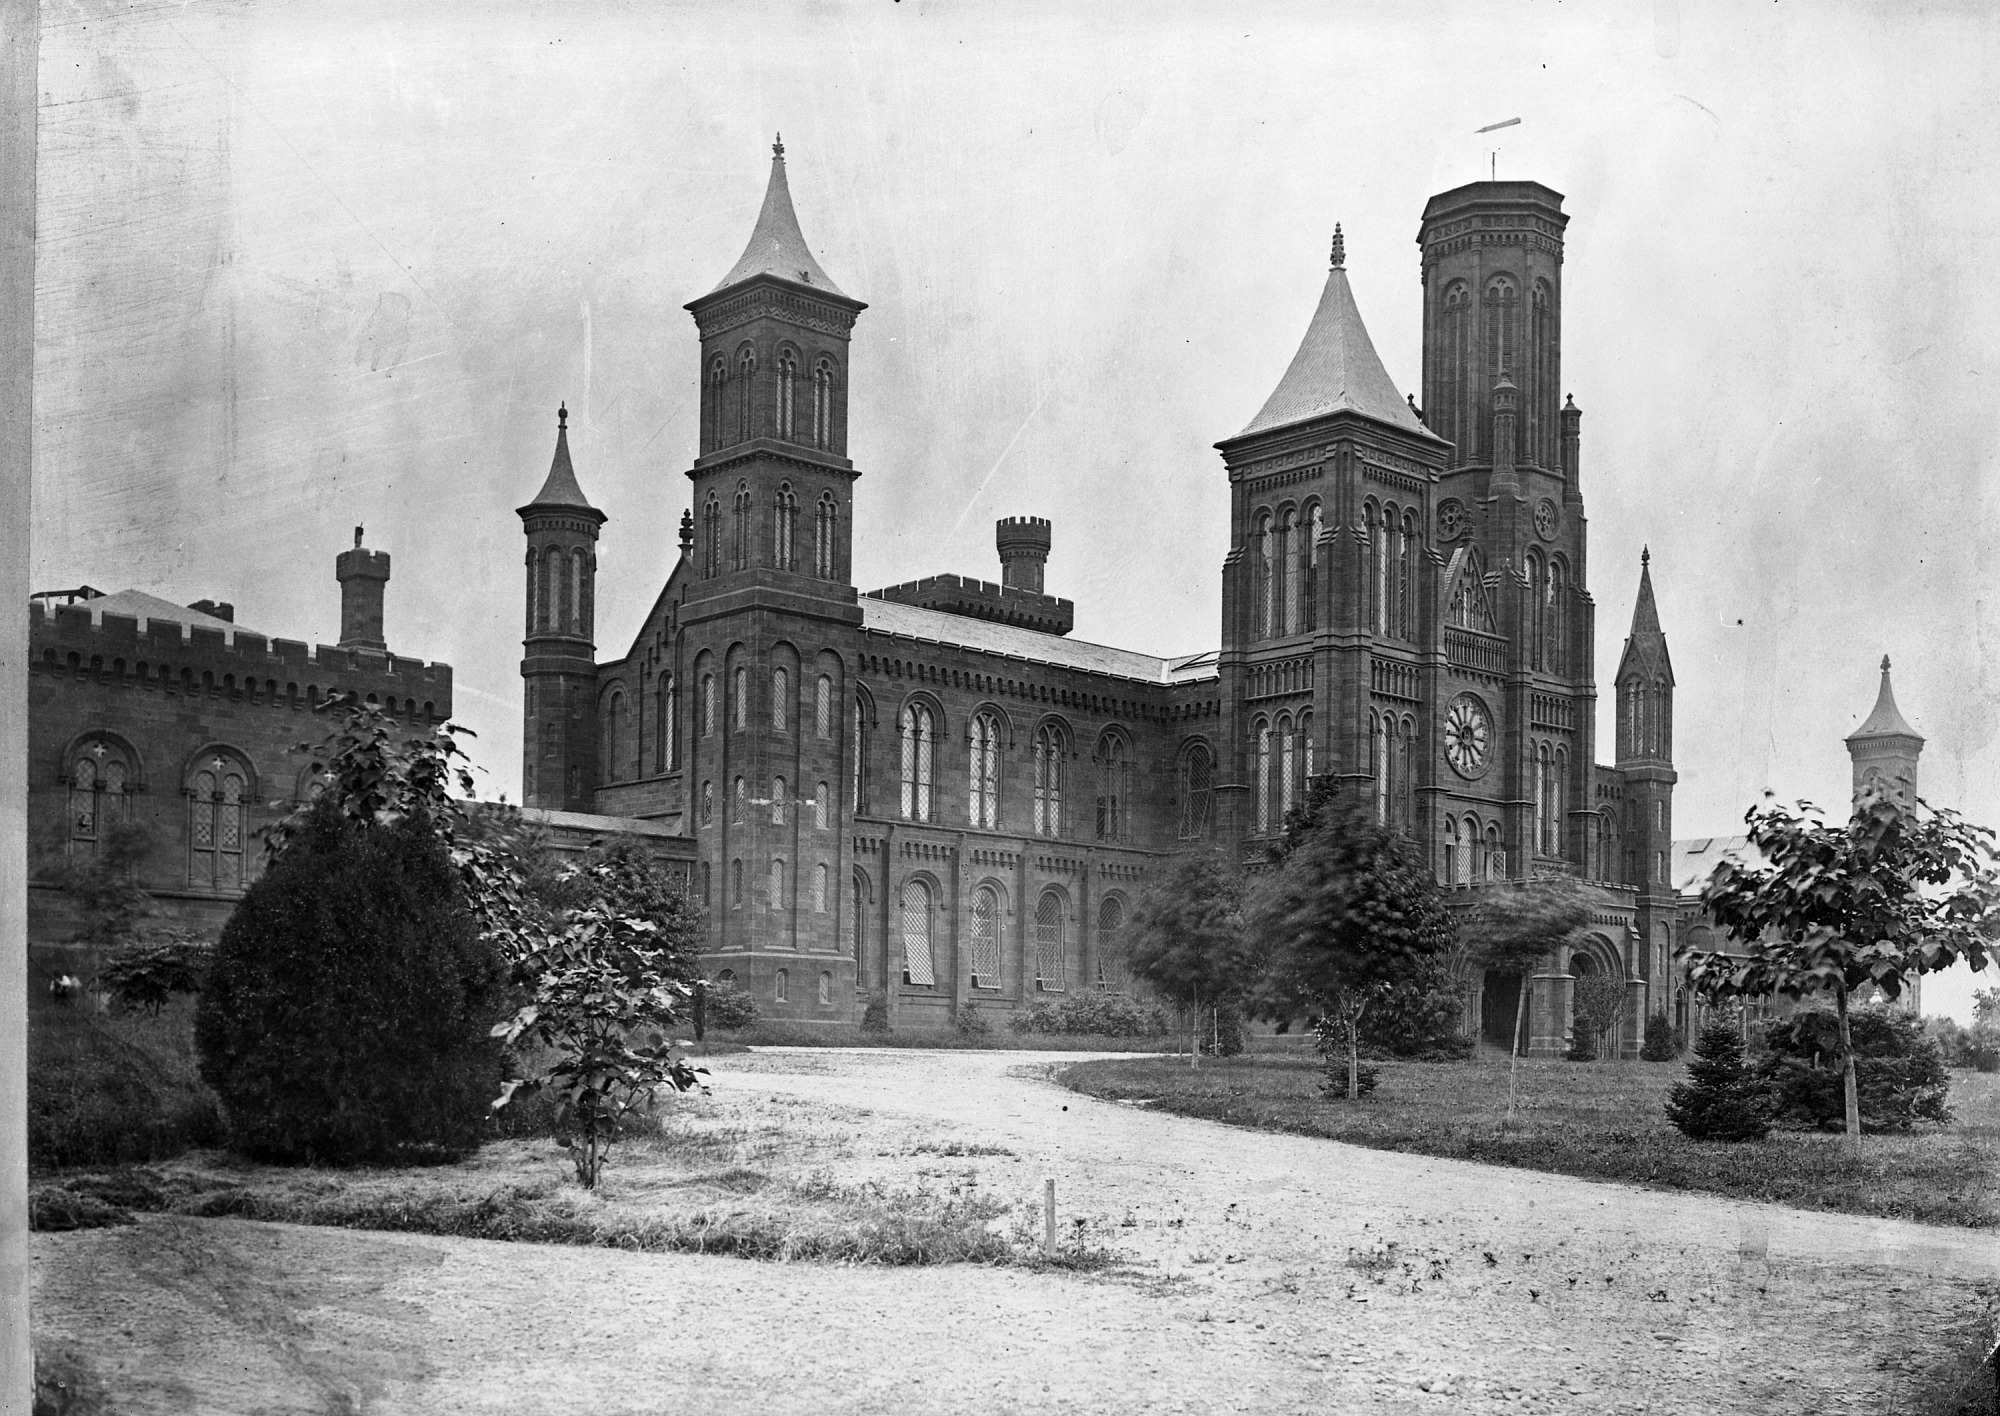 Smithsonian Institution Building, North Facade, c. 1860